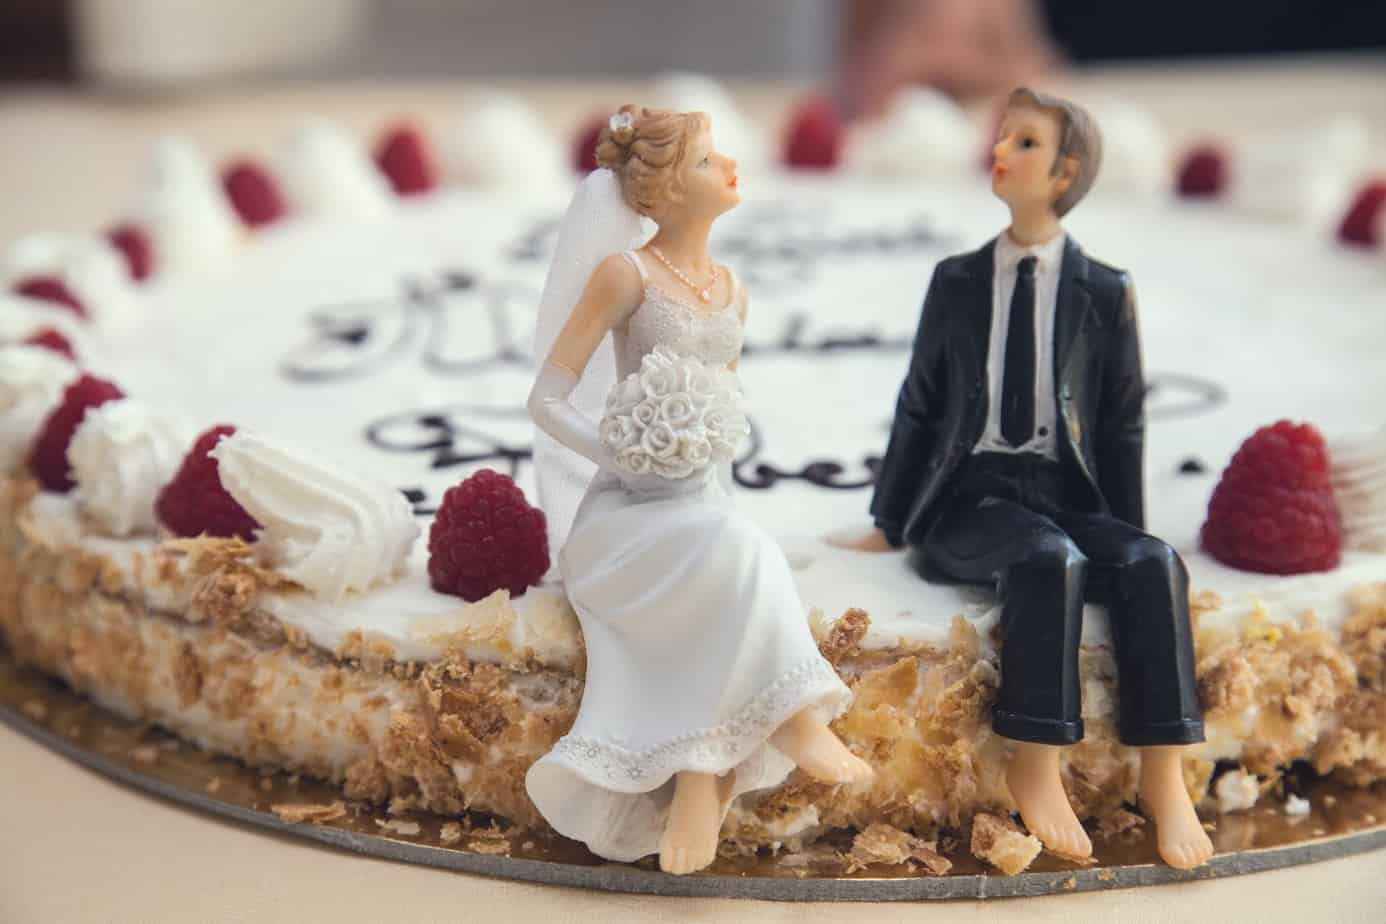 Burgundy Cakes: Here Are Complete Guide To Buy Cake For Your Wedding (2021)